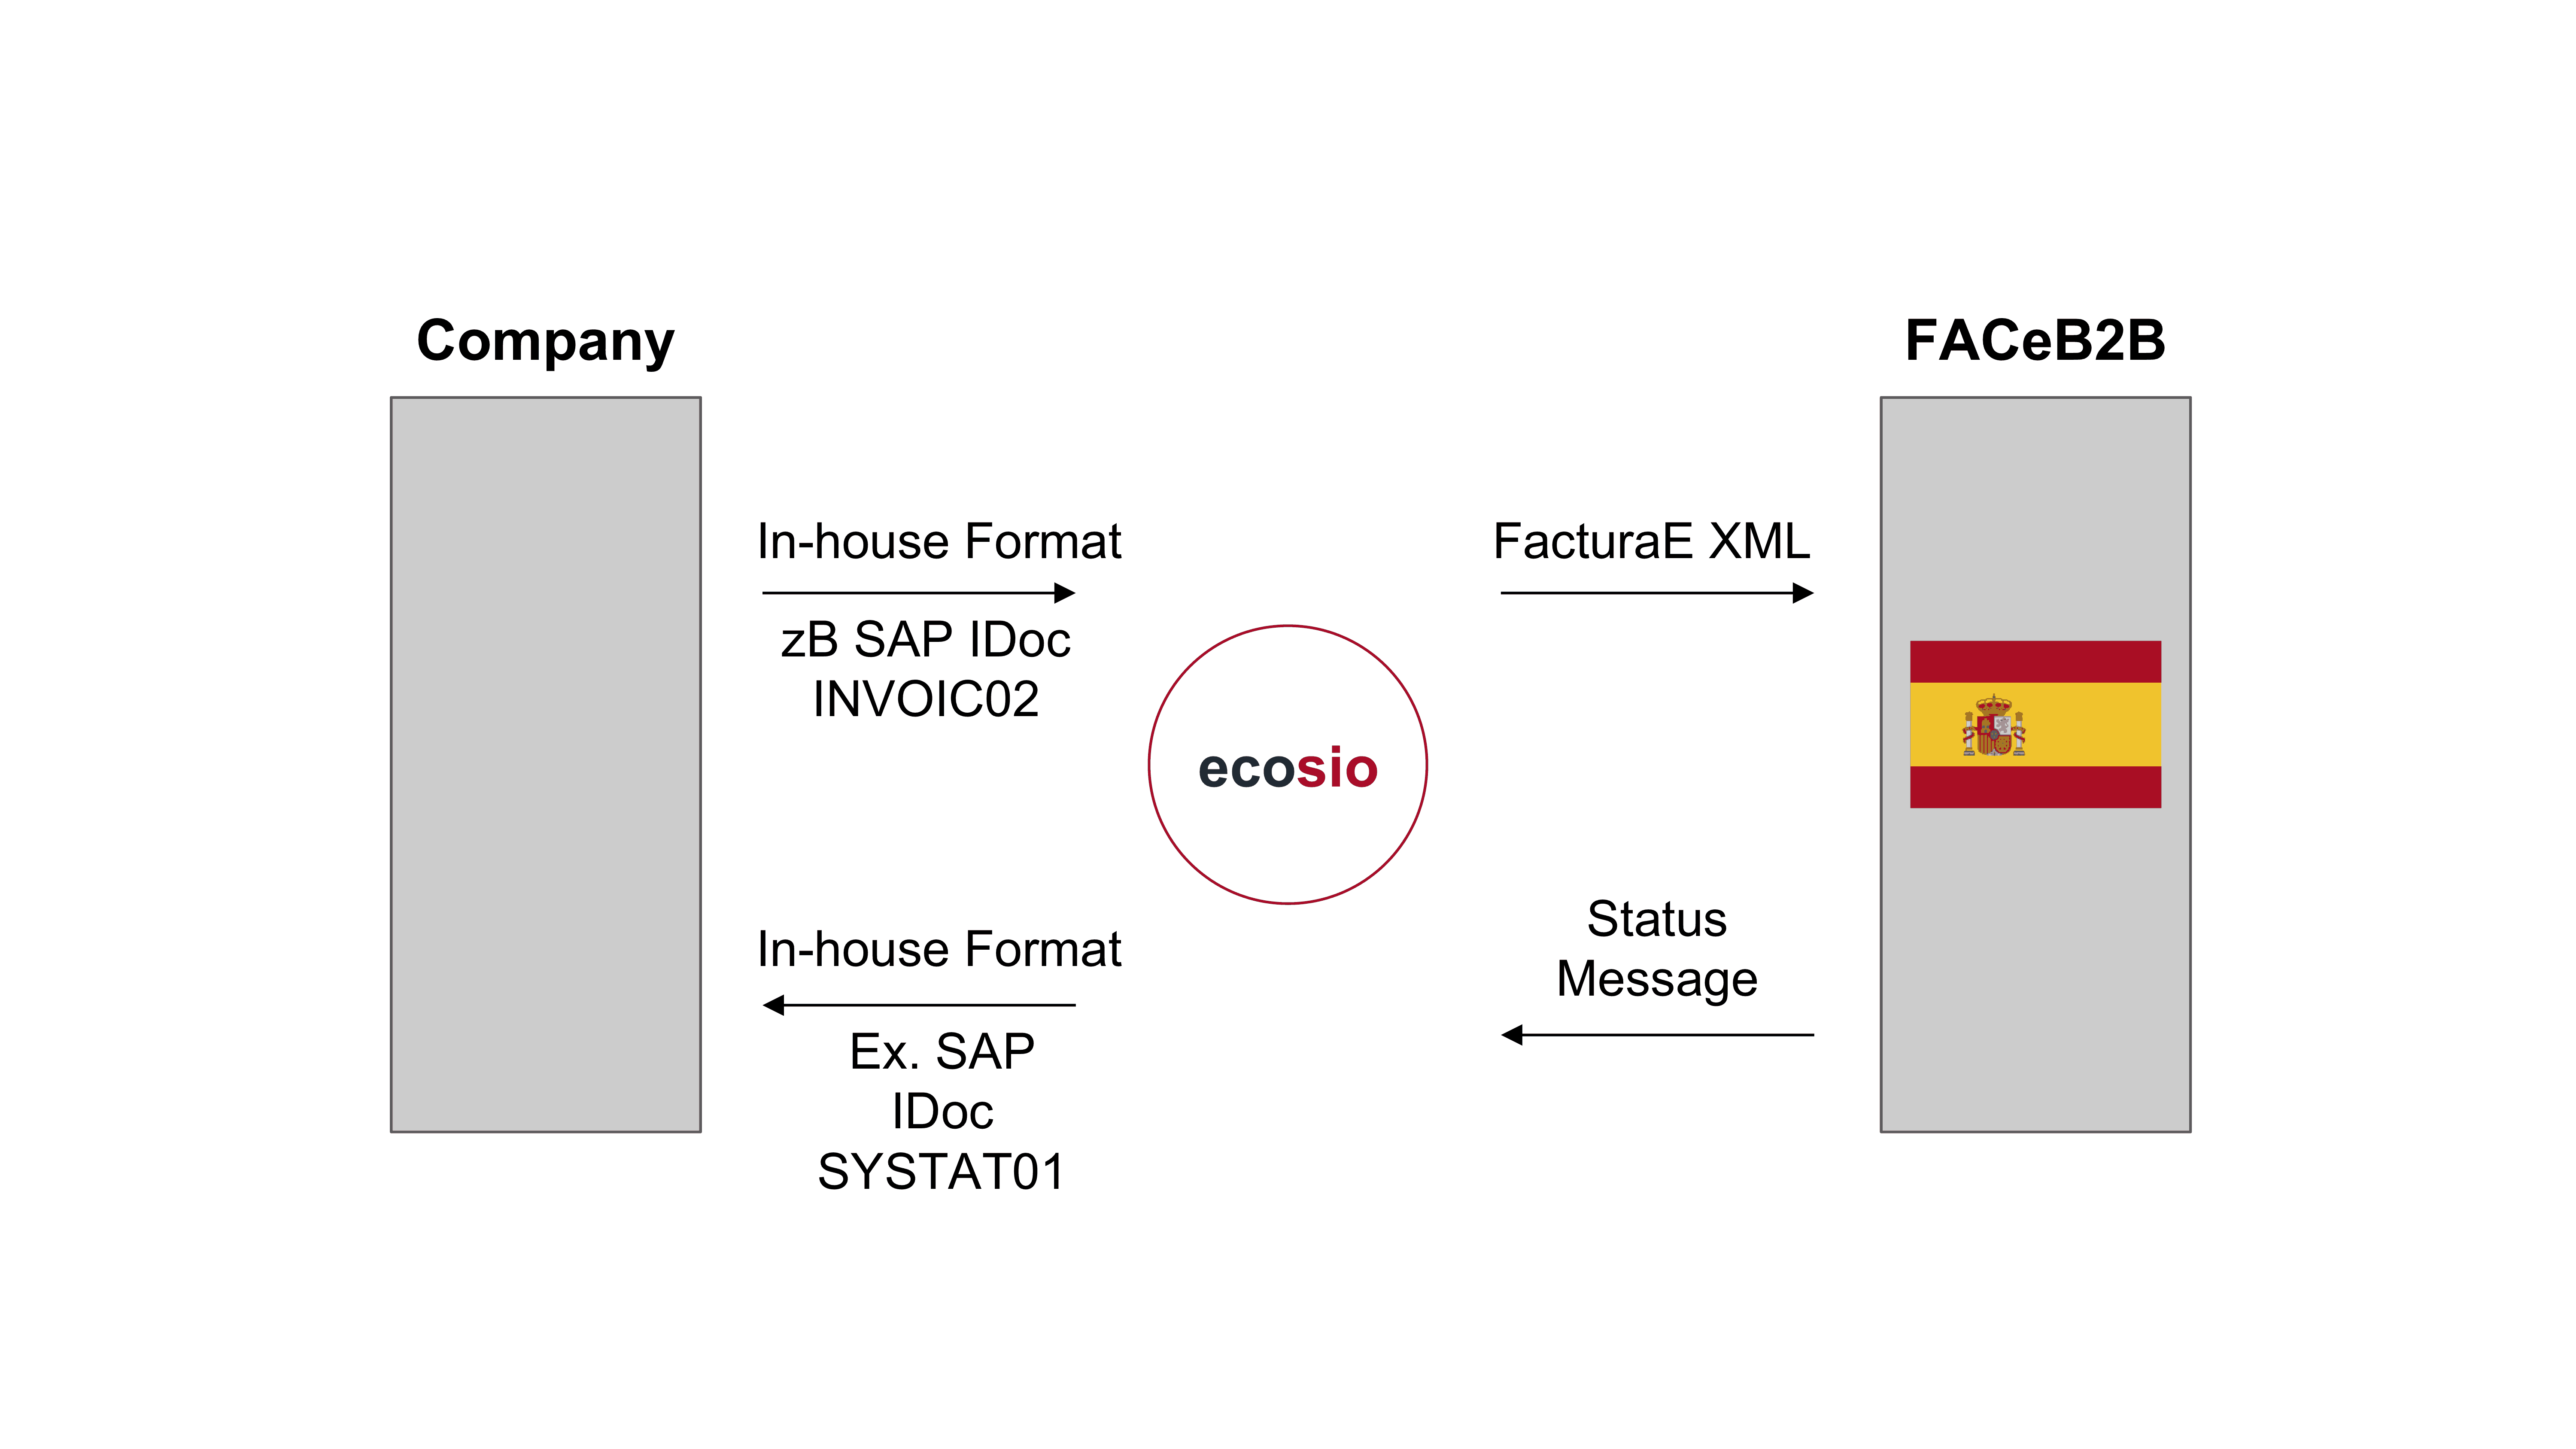 Invoice transmission to the FACeB2B platform